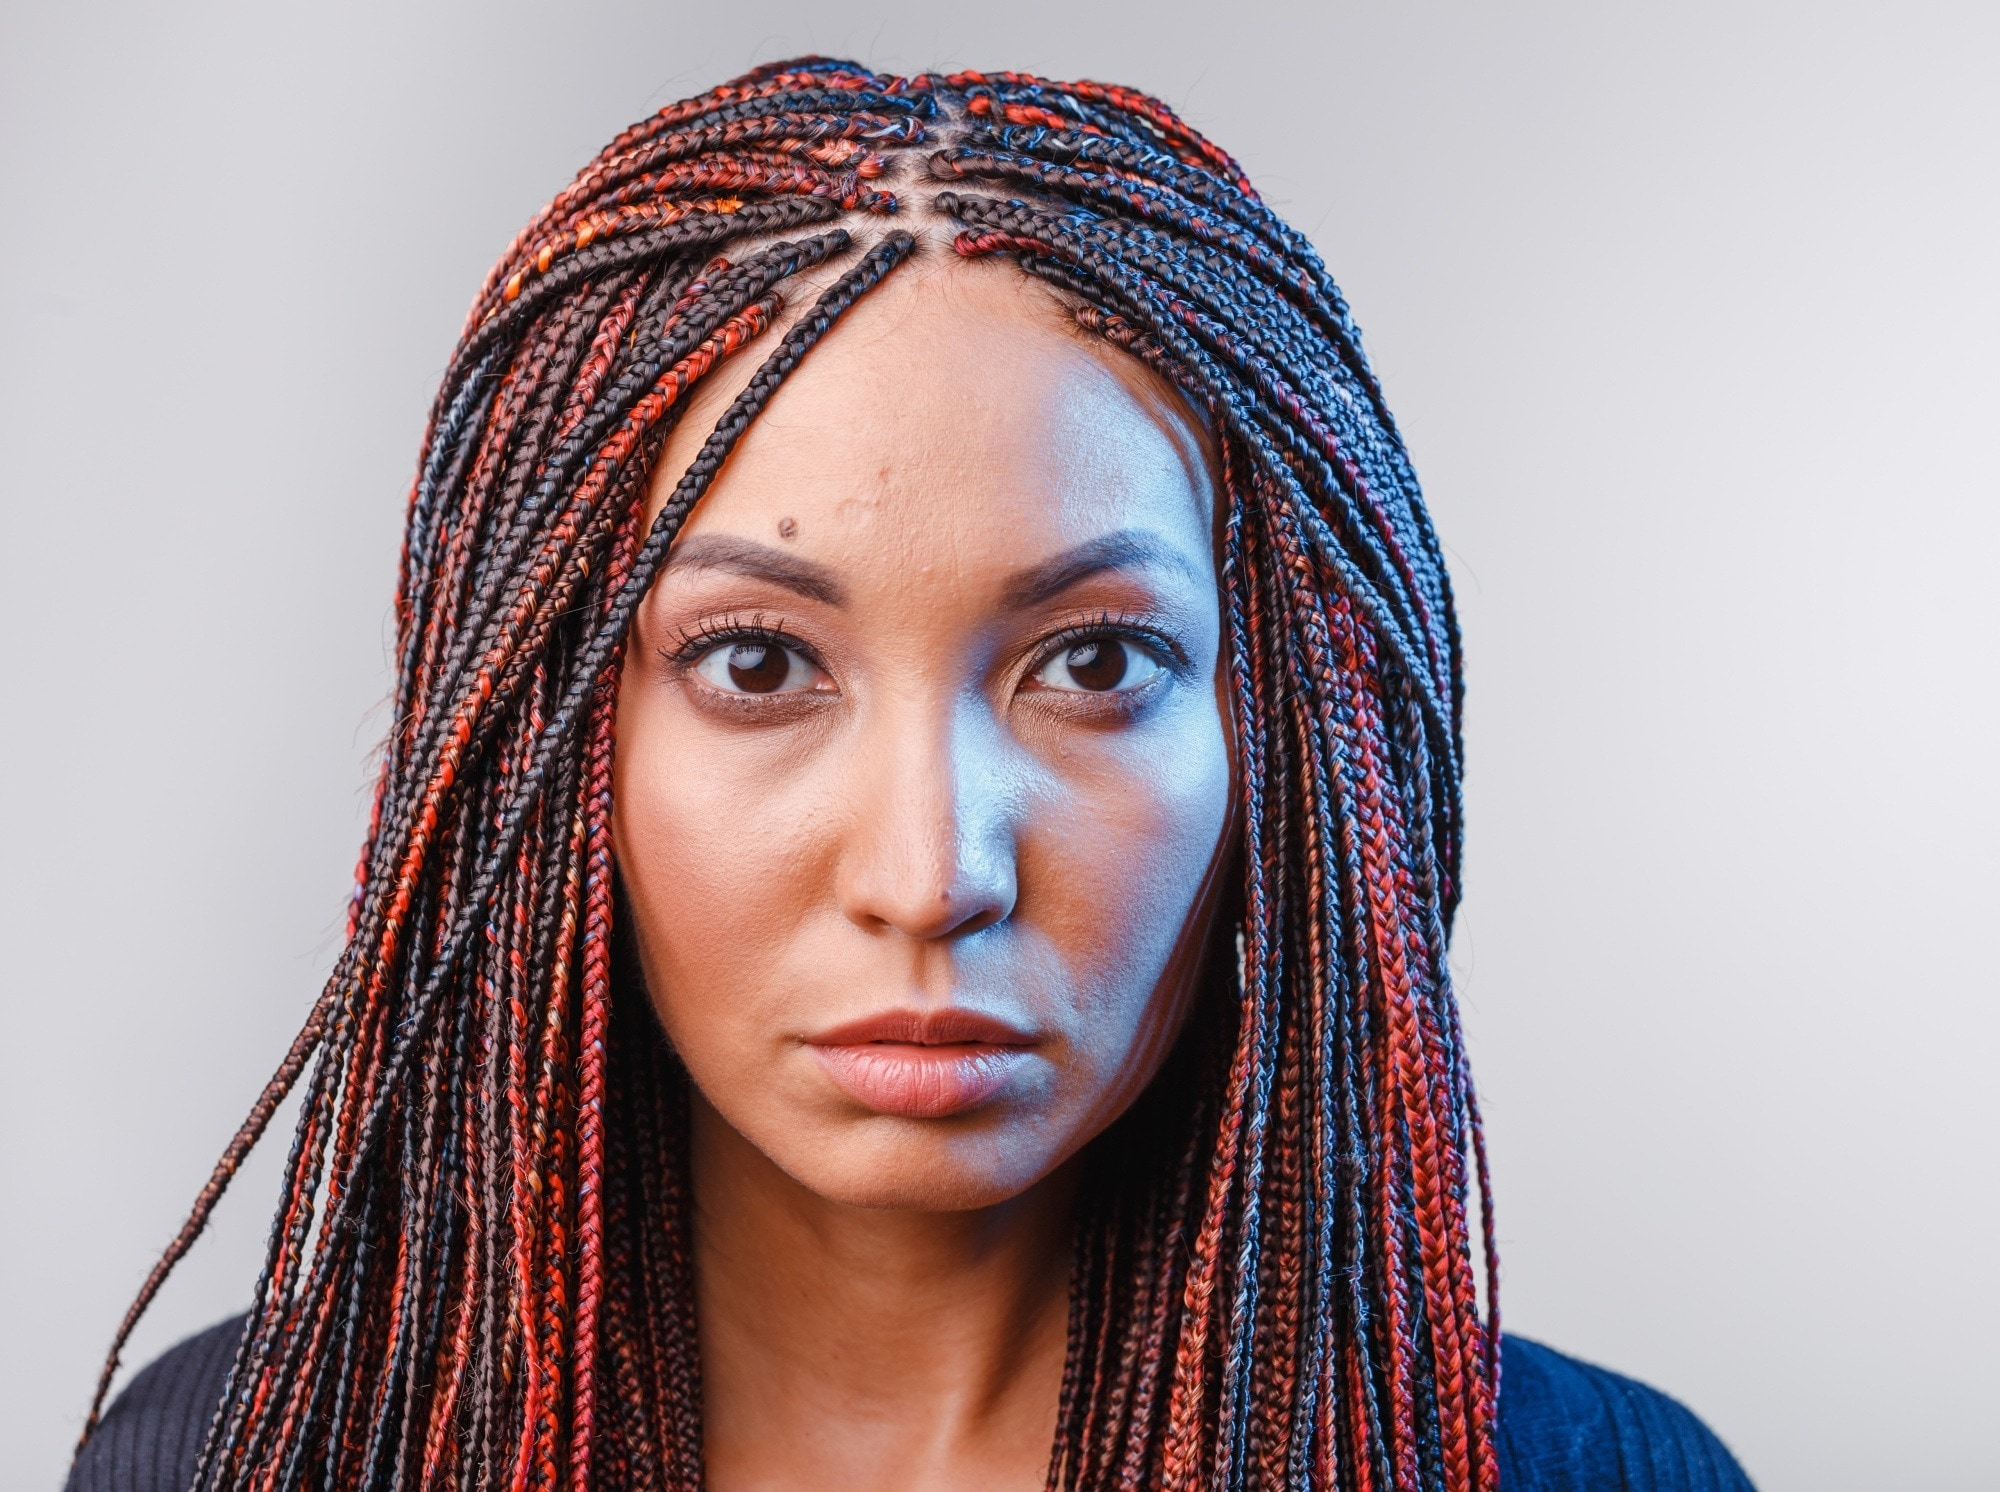 Micro braids: Closeup shot of a woman with long dyed hair in micro braids